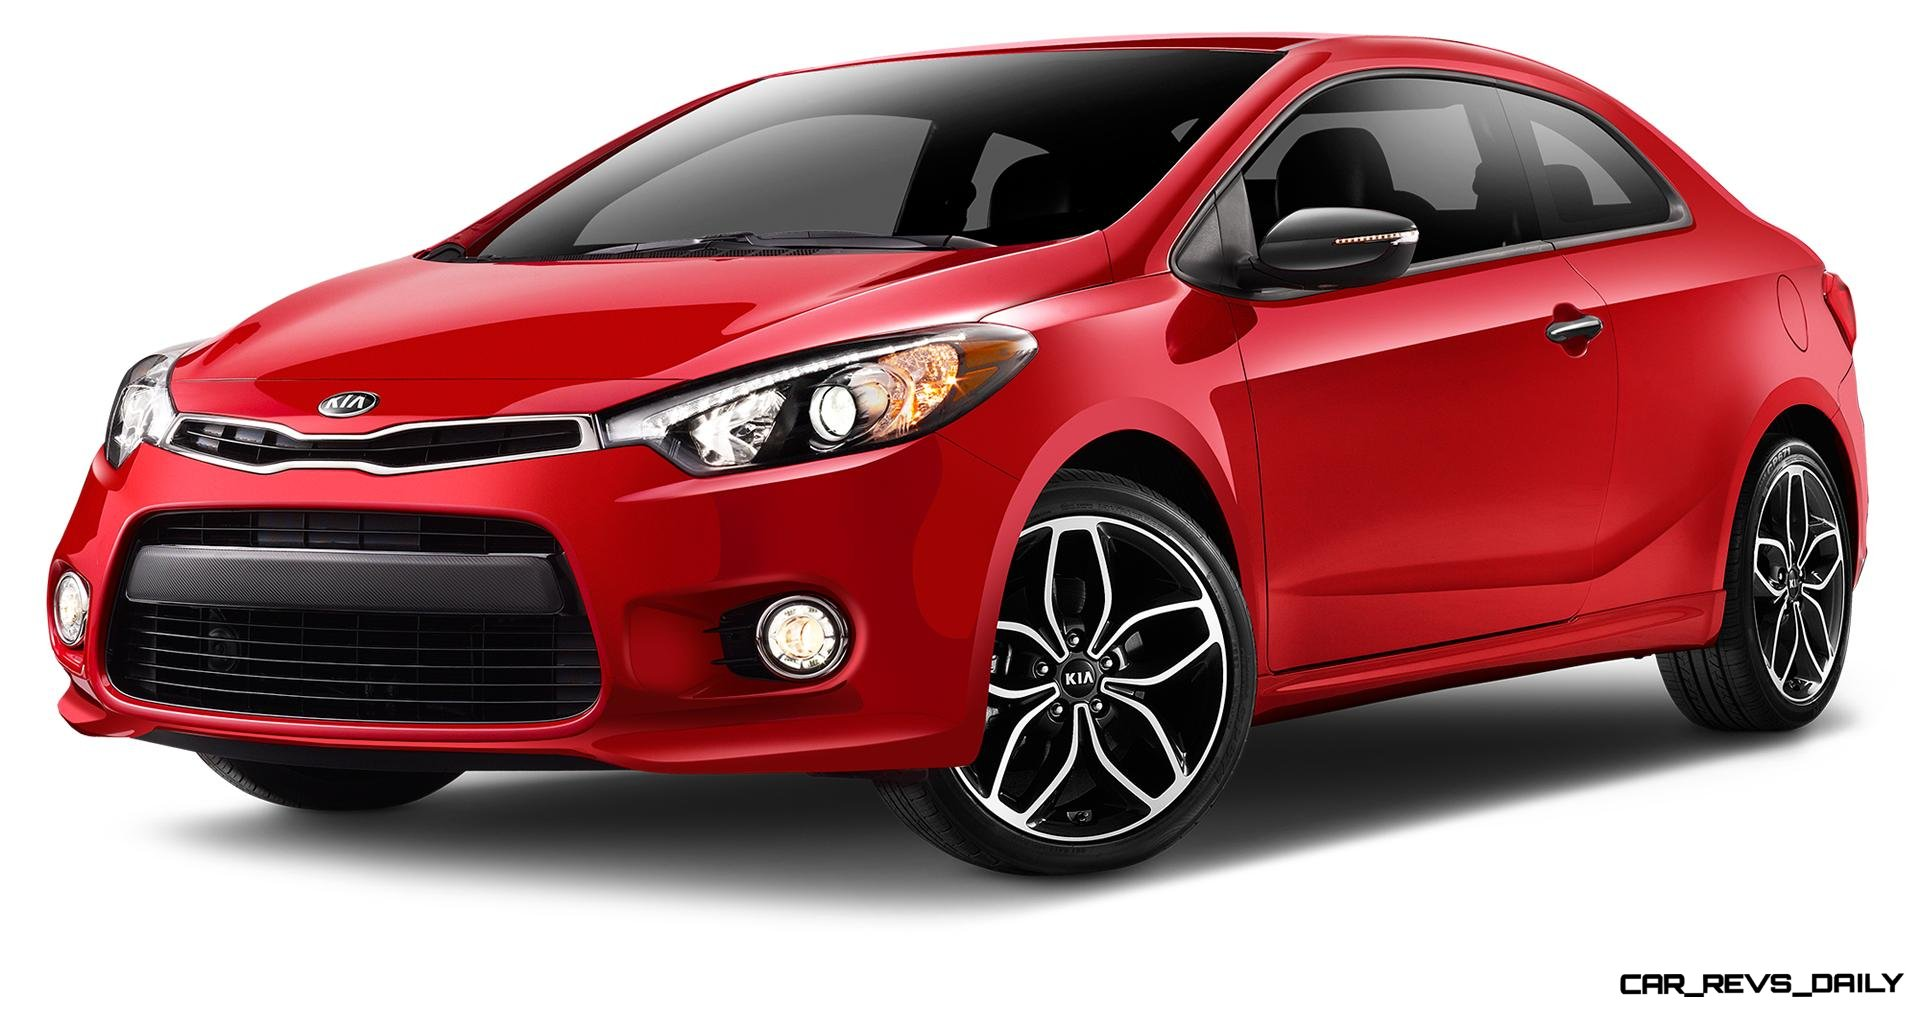 2014 kia forte koup spooling up new turbo power for slinky 2 door car revs. Black Bedroom Furniture Sets. Home Design Ideas